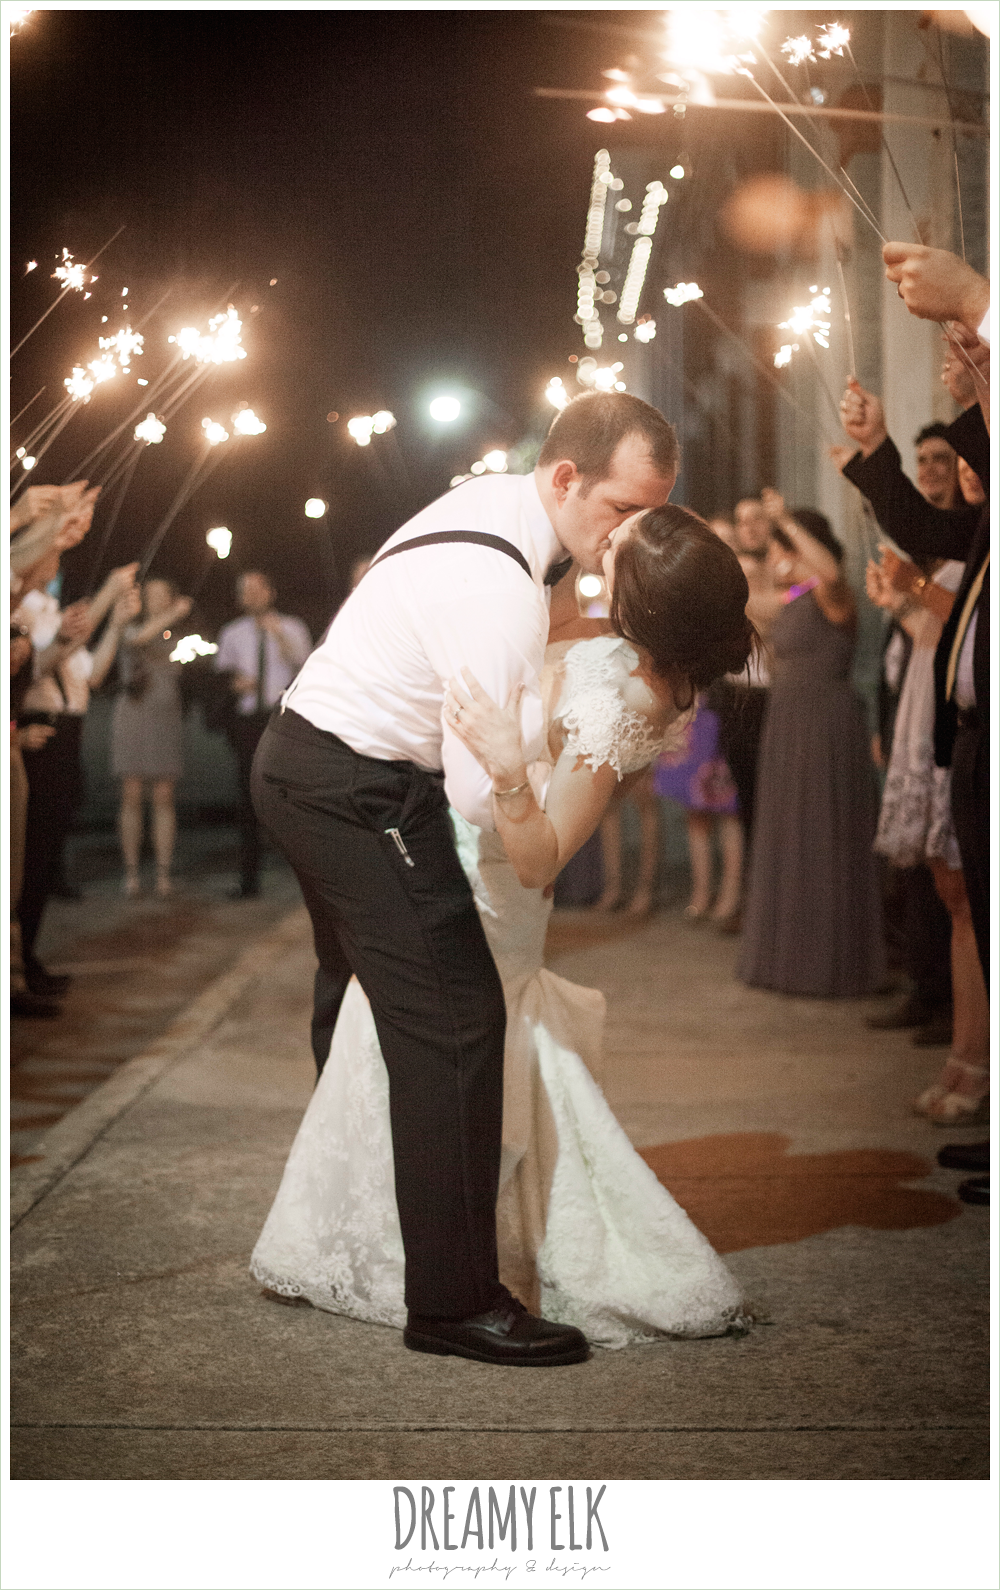 bride and groom send off with sparklers, indoor wedding reception, one eleven east, silver sequin wedding, fourth of july wedding photo {dreamy elk photography and design}